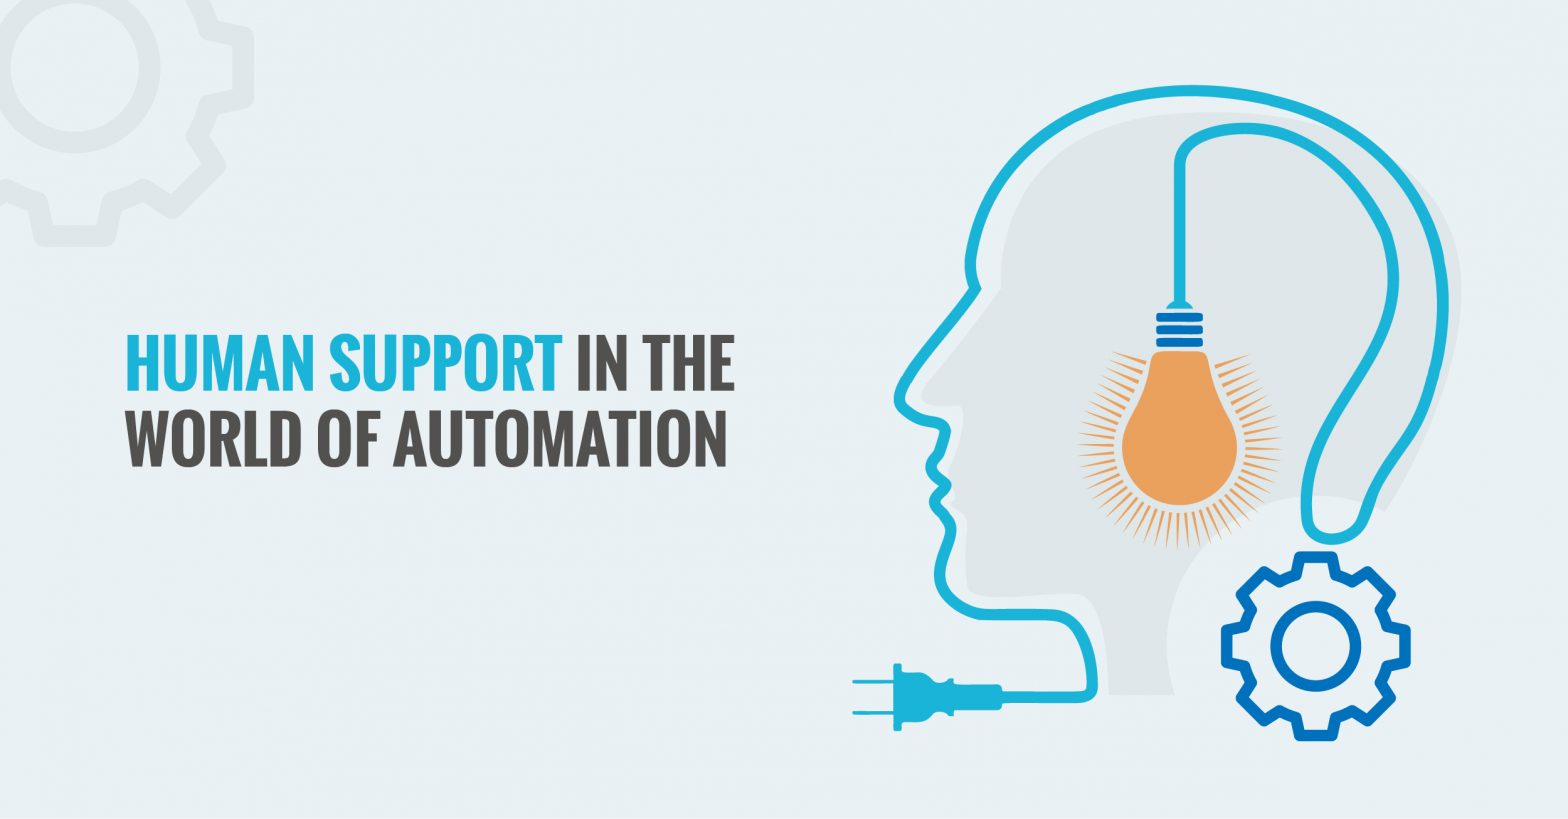 Human Support in the world of automation